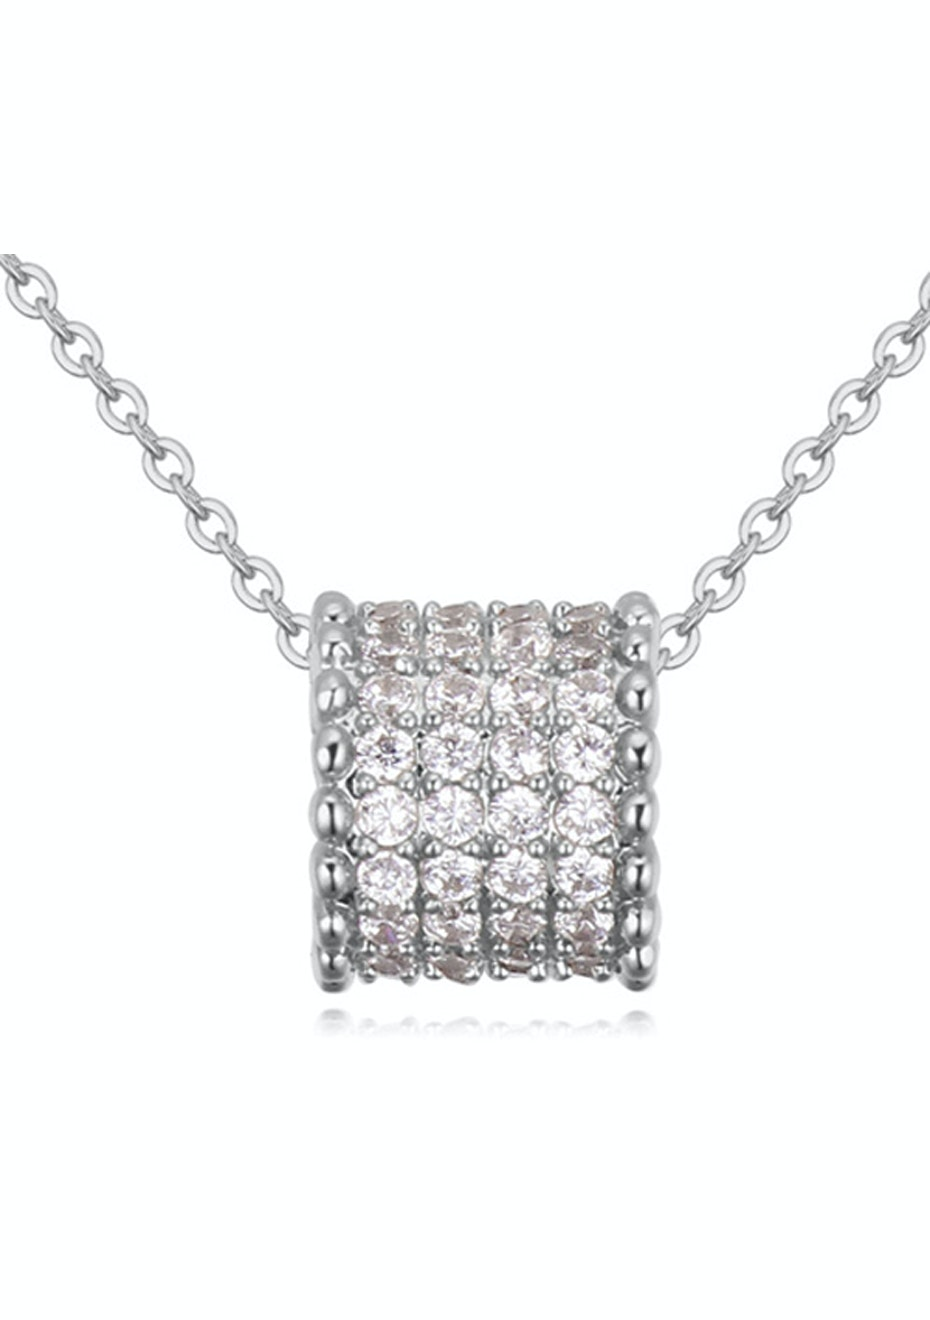 Classic Pave Pendant Necklace Embellished with Crystals from Swarovski